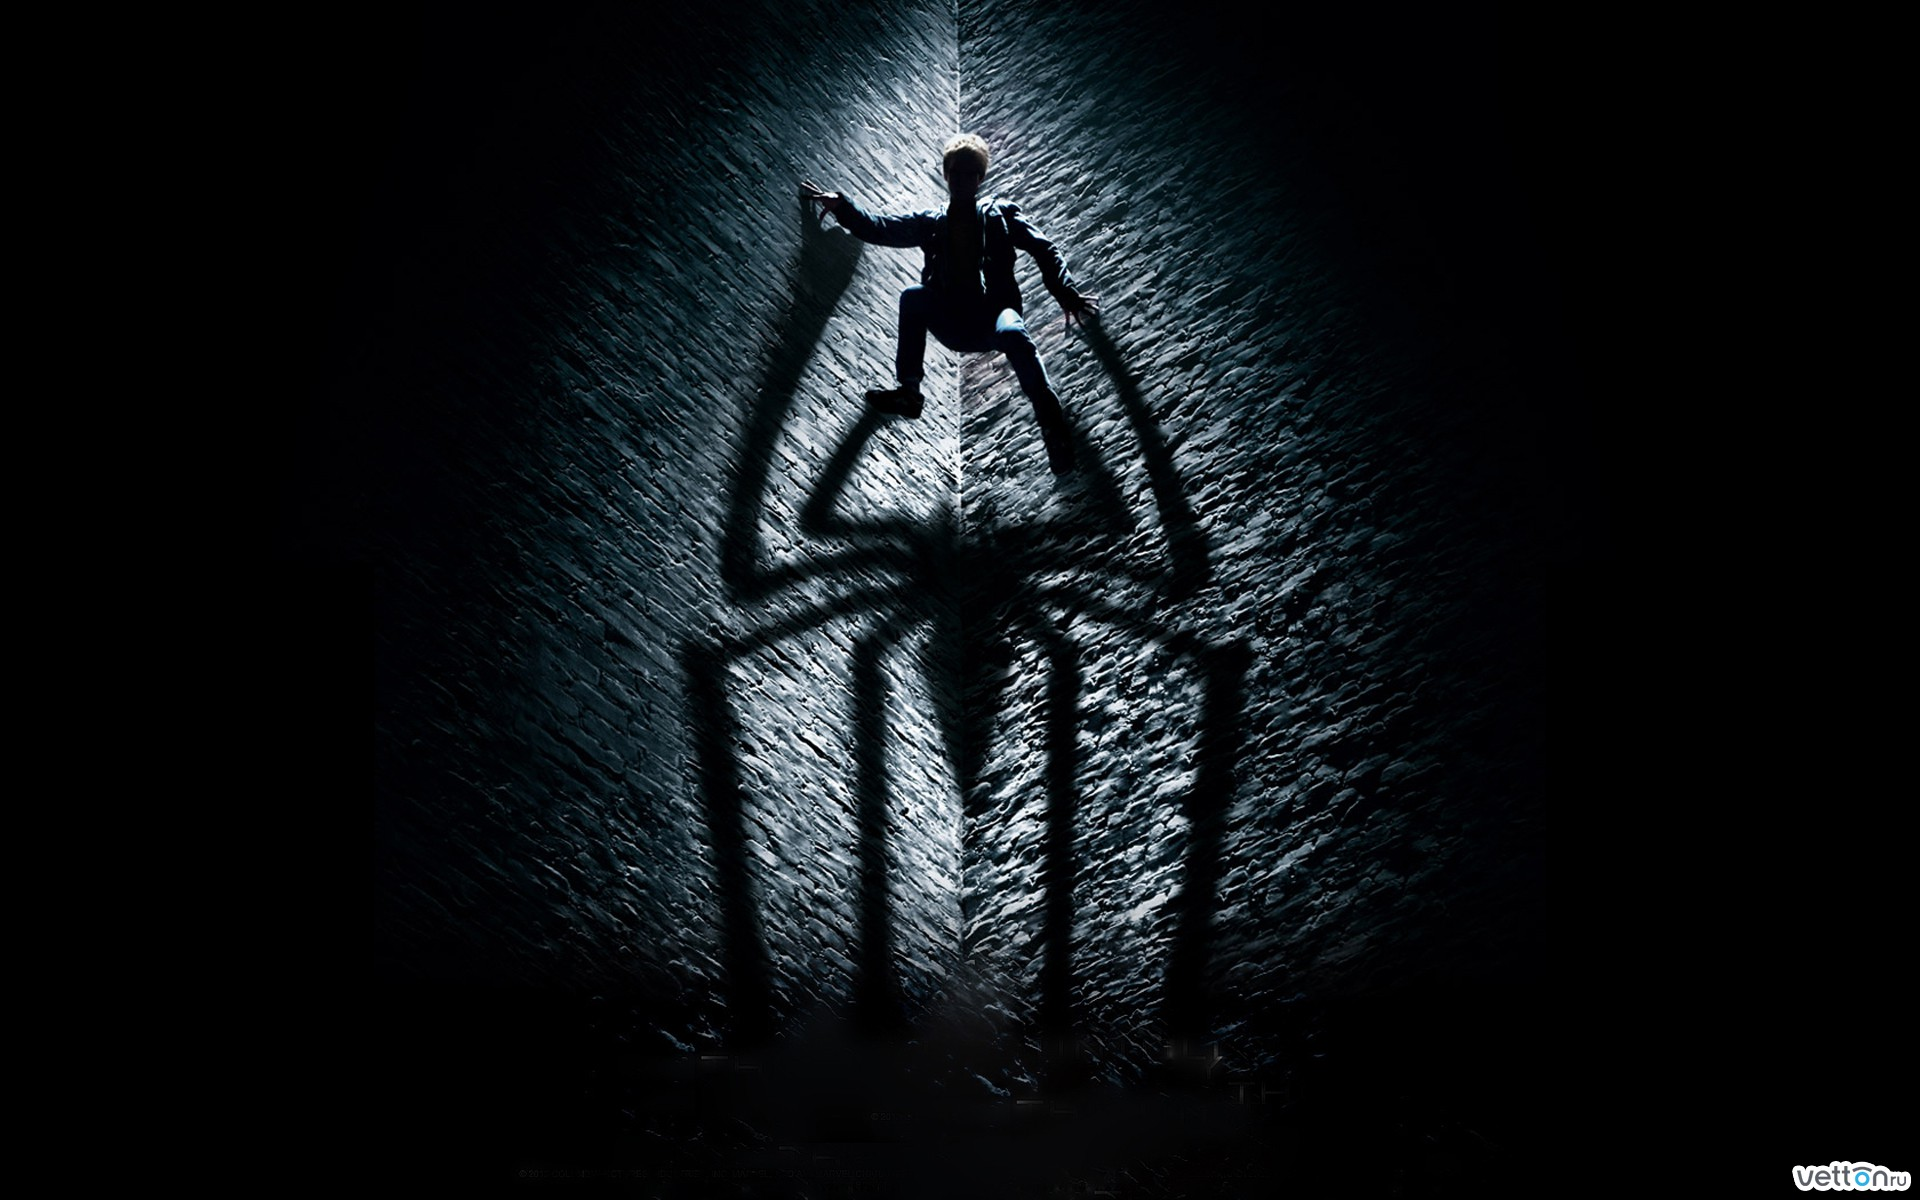 amazing spider-man, andrew garfield, andrew garfield